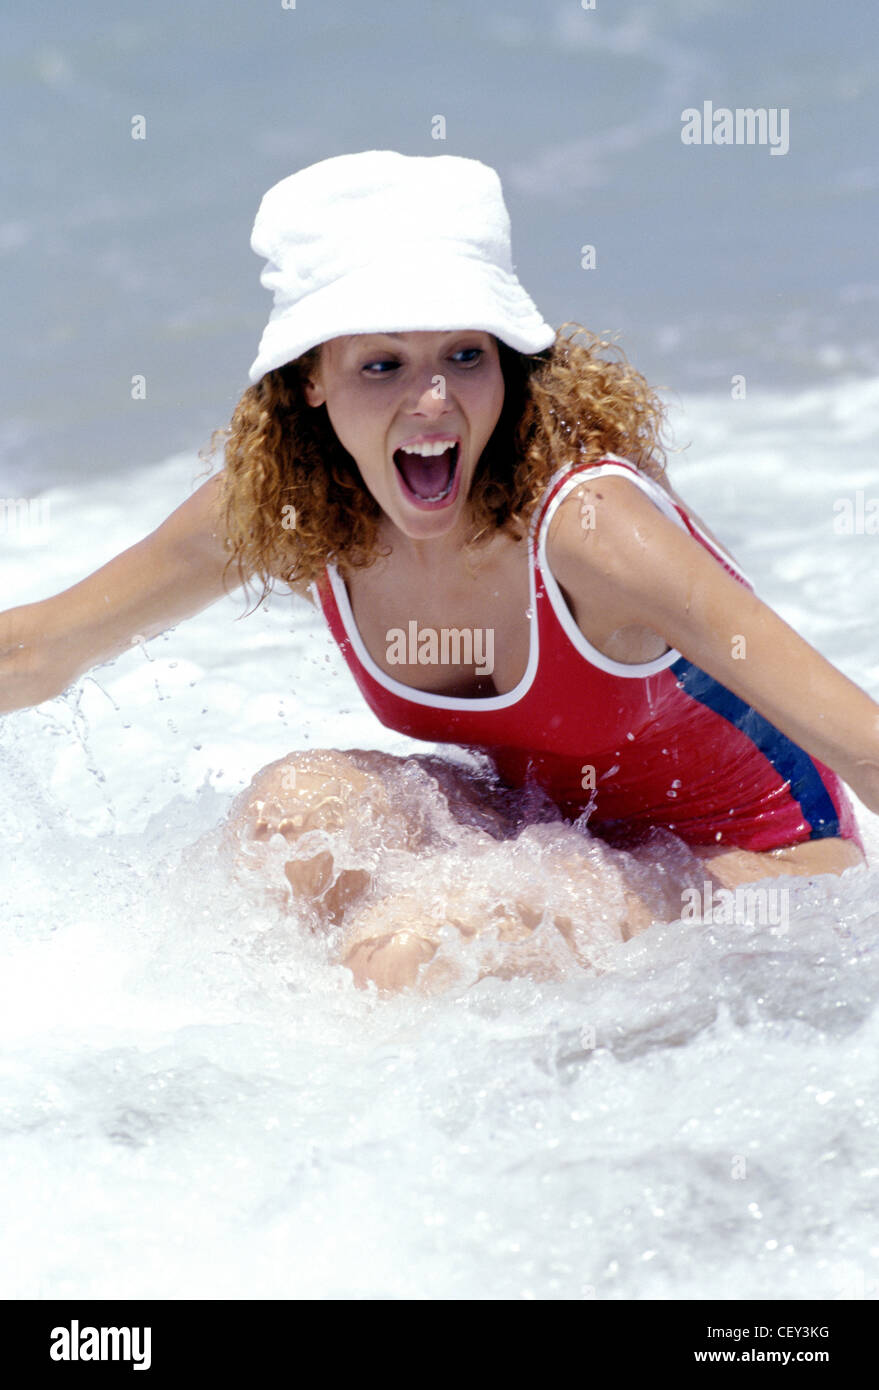 Female curly red hair wearing white sun hat and red swimming costume white  trim 39b62884a60